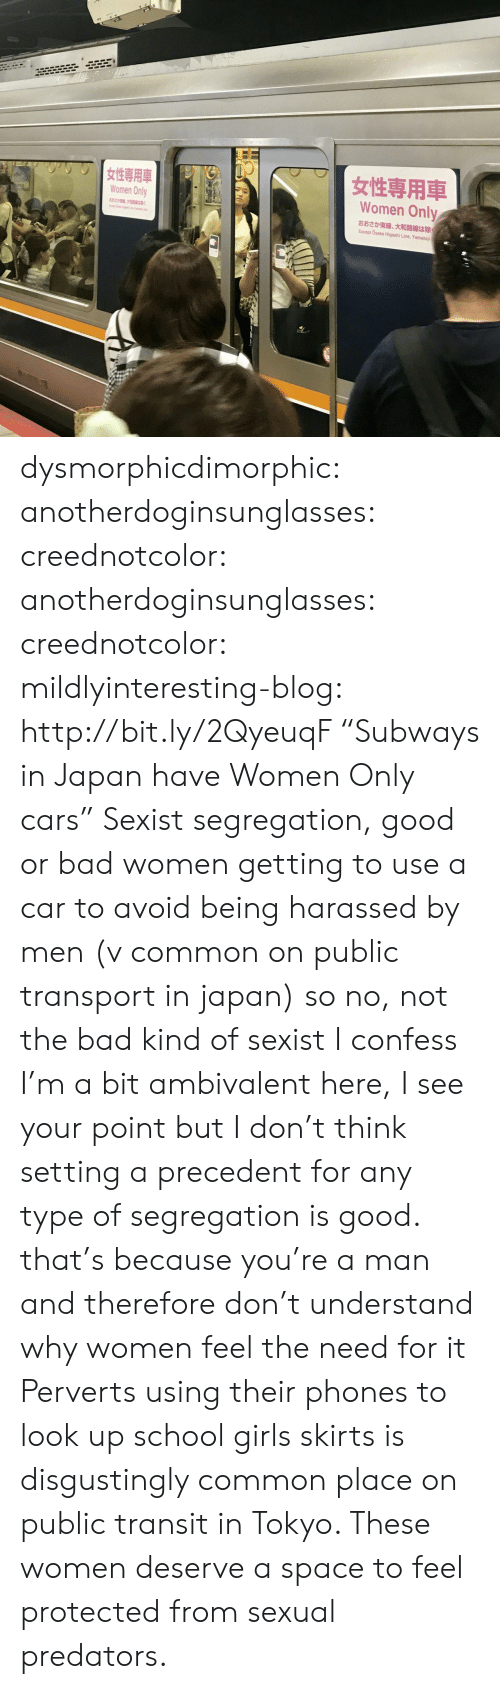 "tokyo: Women Only  Women Only  882  K  Except Osaka Higashi Line, Yamatoji dysmorphicdimorphic: anotherdoginsunglasses:  creednotcolor:   anotherdoginsunglasses:   creednotcolor:   mildlyinteresting-blog:  http://bit.ly/2QyeuqF ""Subways in Japan have Women Only cars""  Sexist segregation, good or bad   women getting to use a car to avoid being harassed by men (v common on public transport in japan) so no, not the bad kind of sexist    I confess I'm a bit ambivalent here, I see your point but I don't think setting a precedent for any type of segregation is good.   that's because you're a man and therefore don't understand why women feel the need for it   Perverts using their phones to look up school girls skirts is disgustingly common place on public transit in Tokyo. These women deserve a space to feel protected from sexual predators."